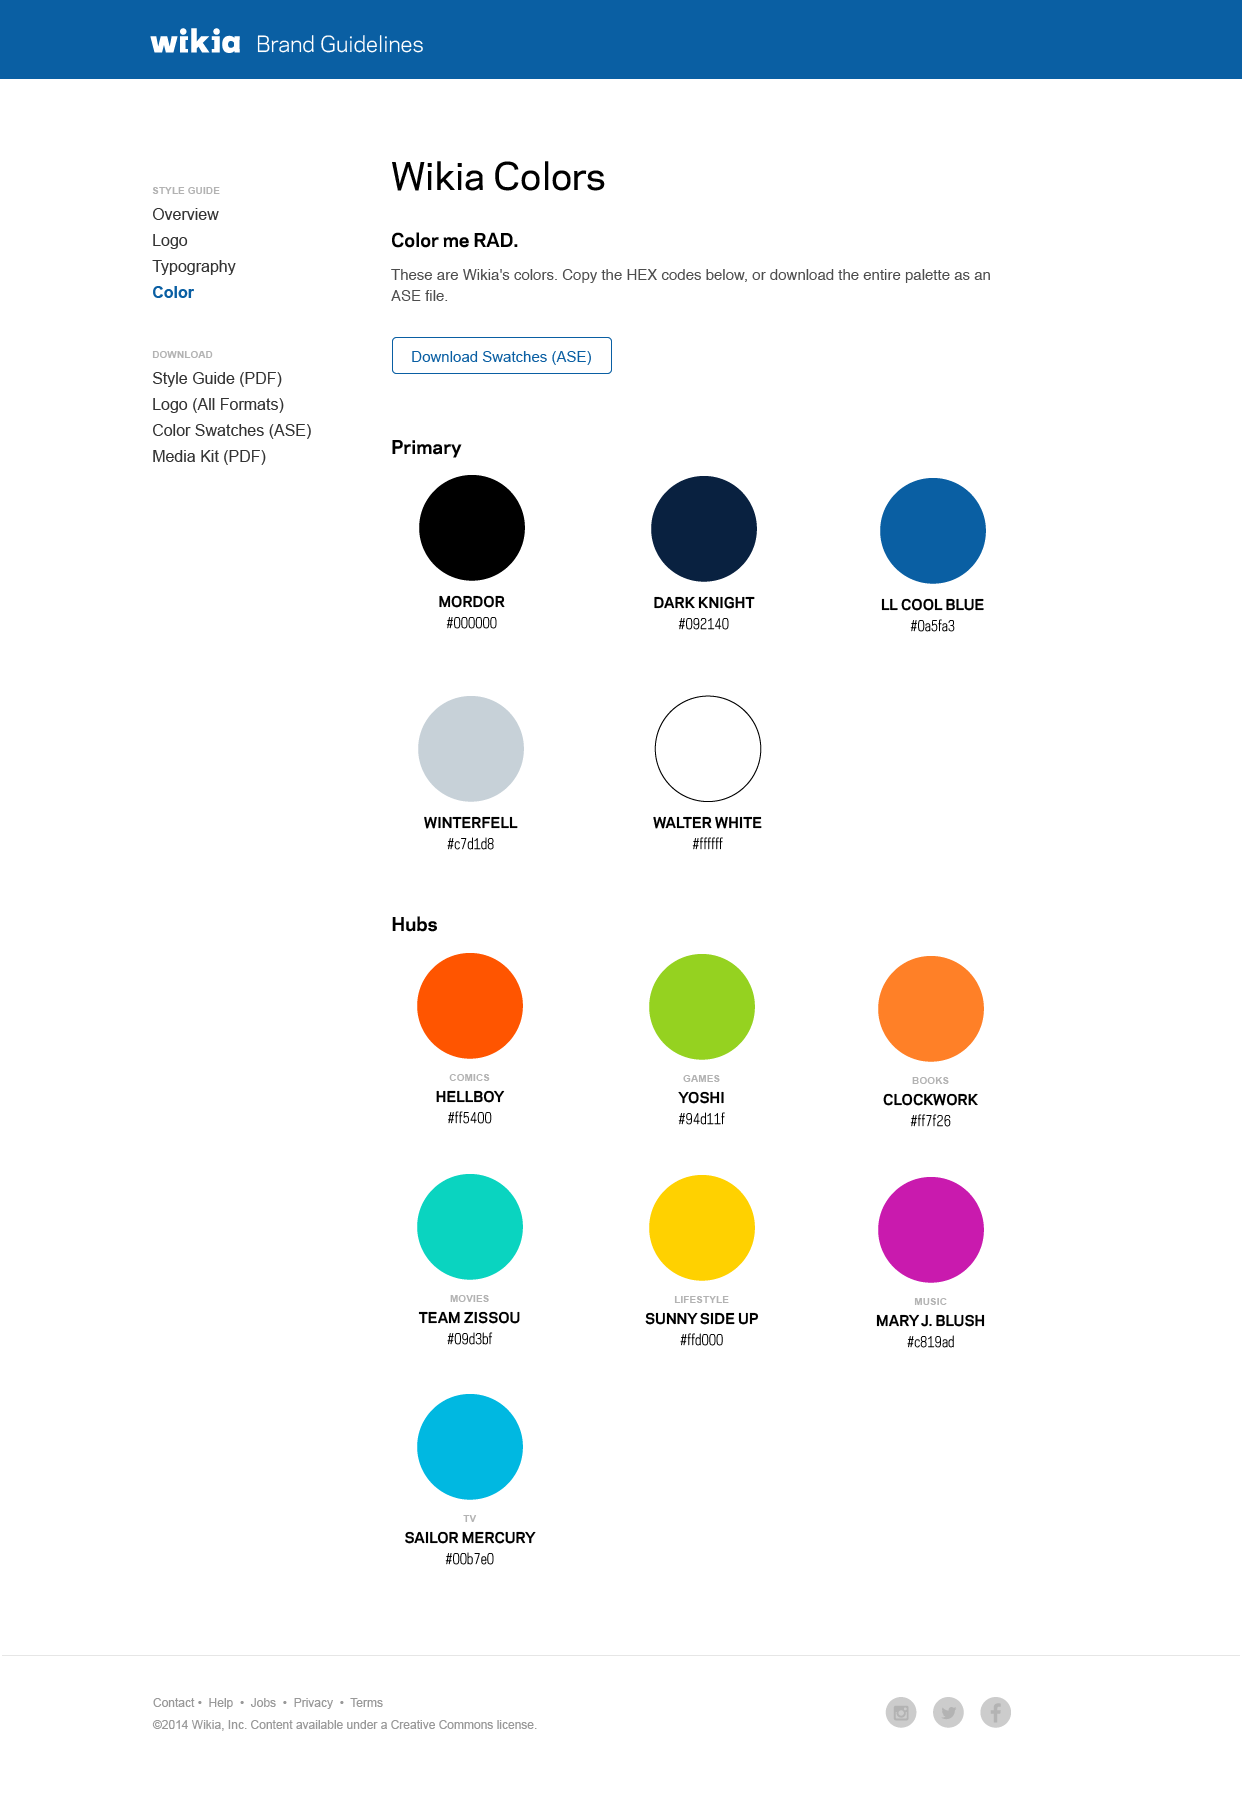 Wikia_BrandGuidelines_ColorPalette_R11.png